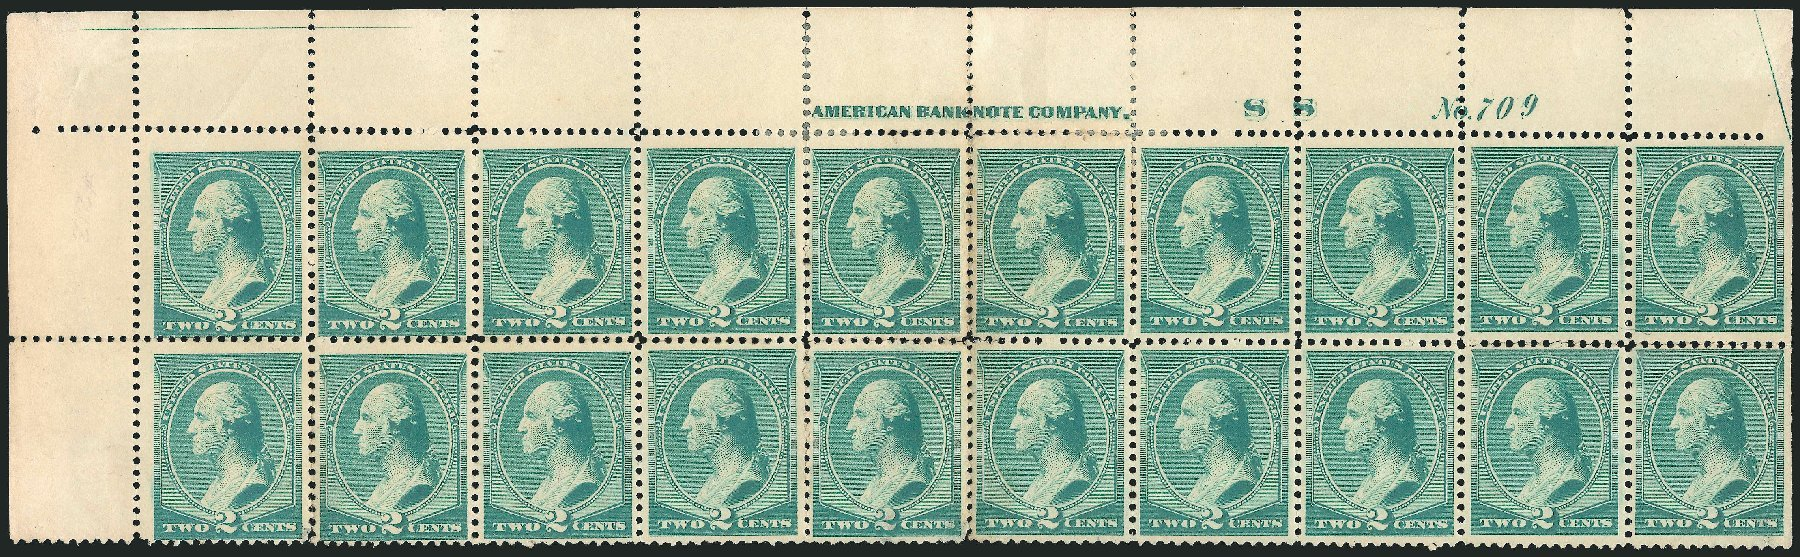 Value of US Stamp Scott Catalog # 213 - 1883 2c Washington. Robert Siegel Auction Galleries, Nov 2014, Sale 1084, Lot 3477